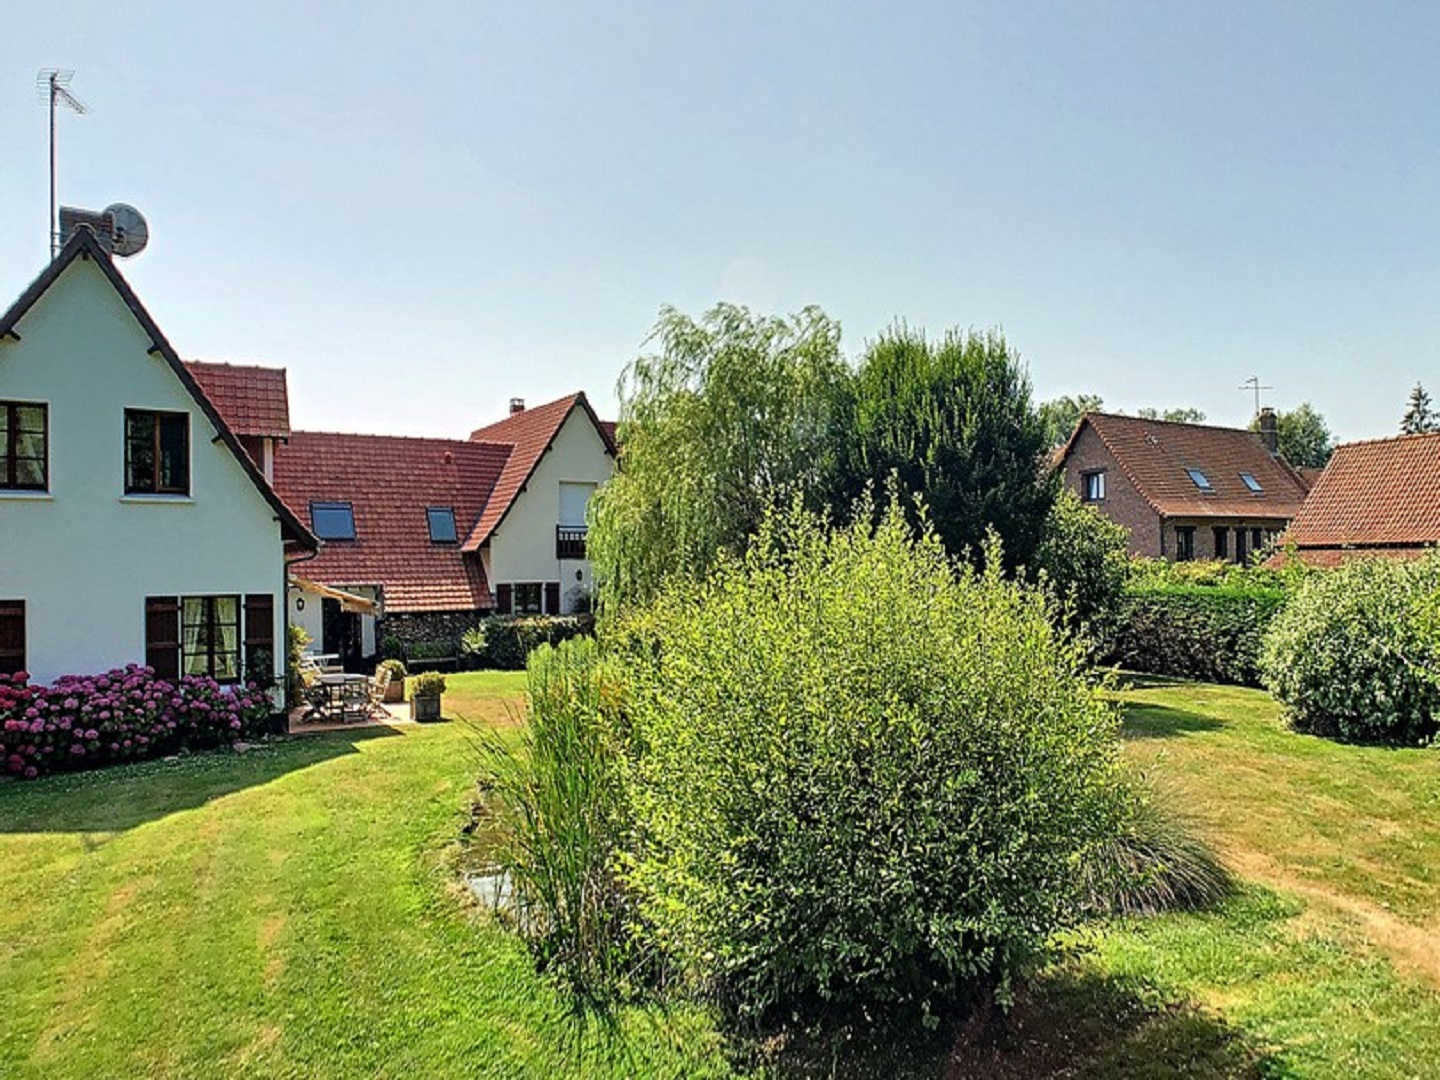 A large brick building with green grass in front of a house at Le Clos de l'Ermitage.